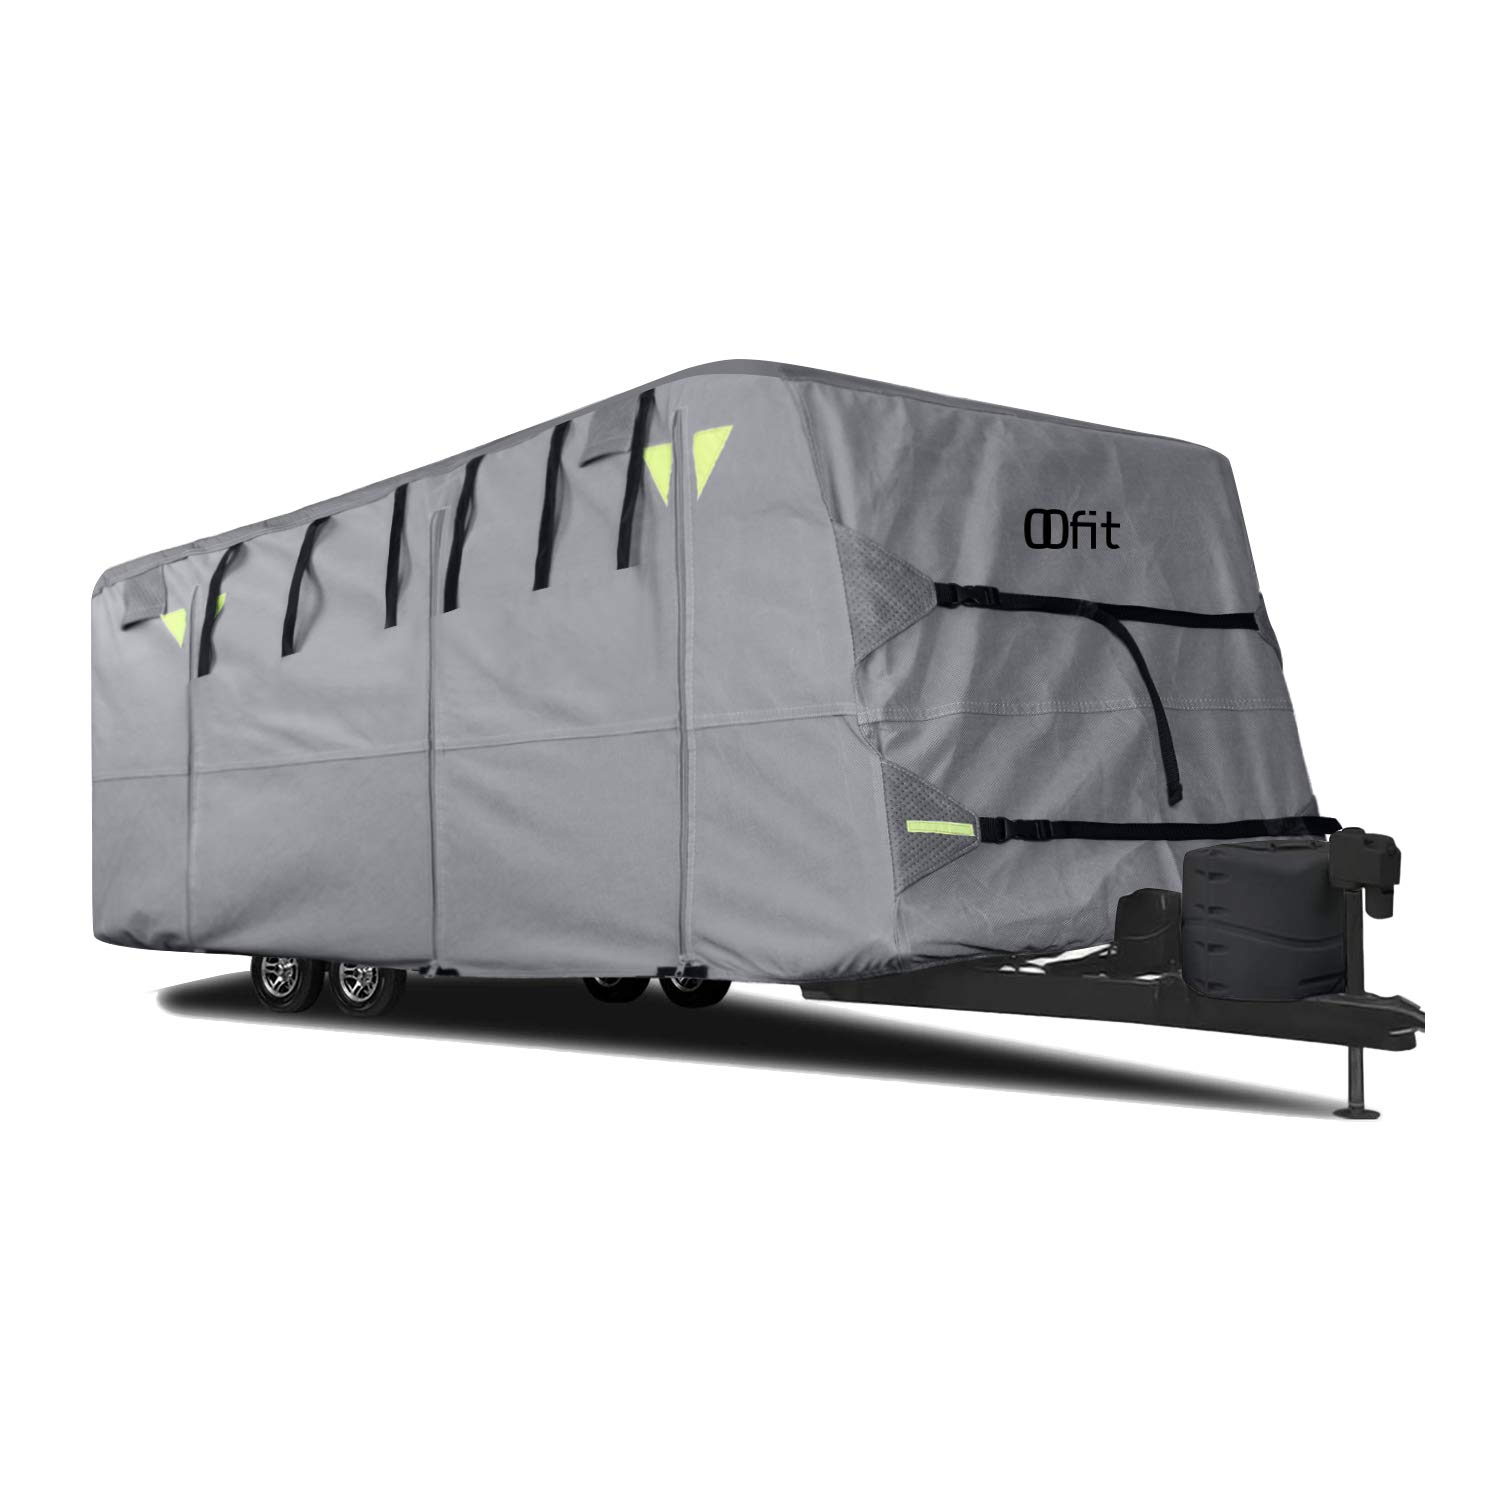 OOFIT Travel Trailer RV Cover Fits for 27' - 30'for RVs, Breathable Waterproof Anti-UV Ripstop Weather Resistant 4 - Ply Non-Woven Fabric Roof